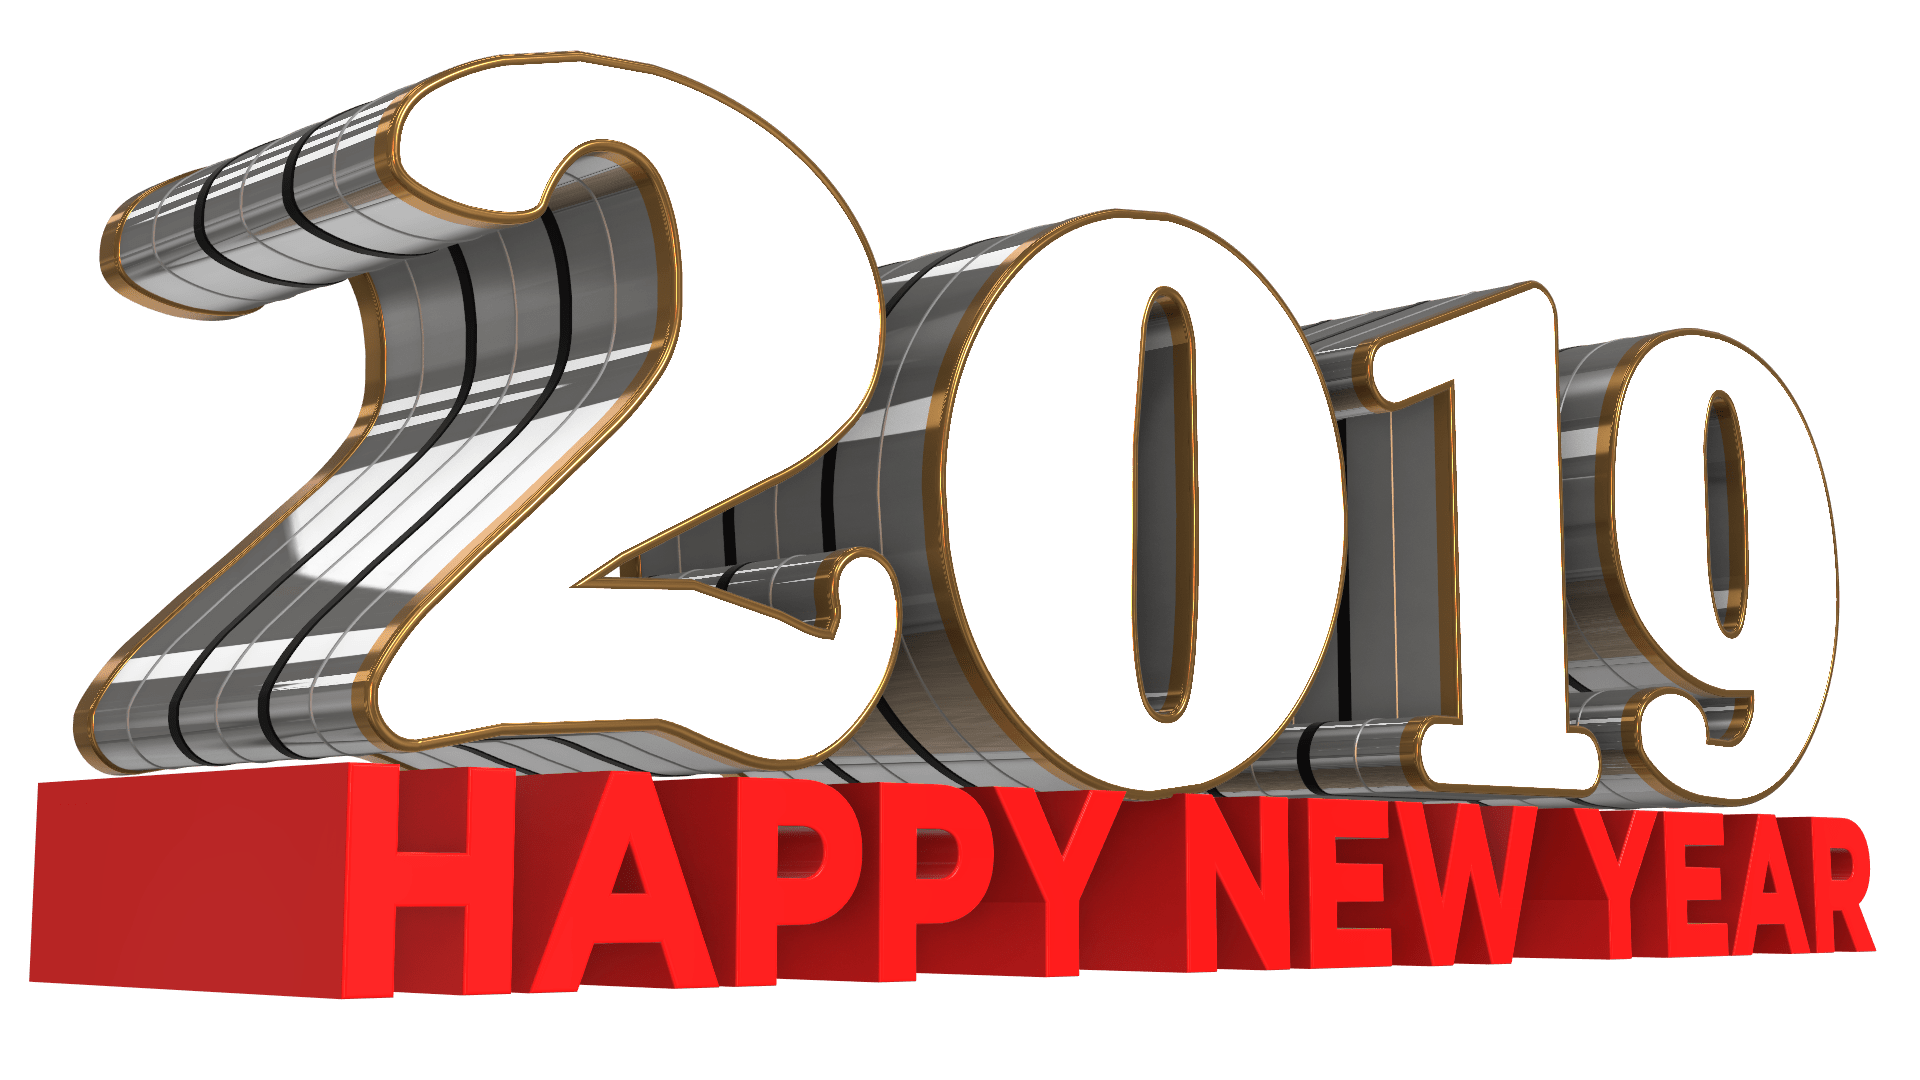 Happy New Year 2019 Free 3D PNG